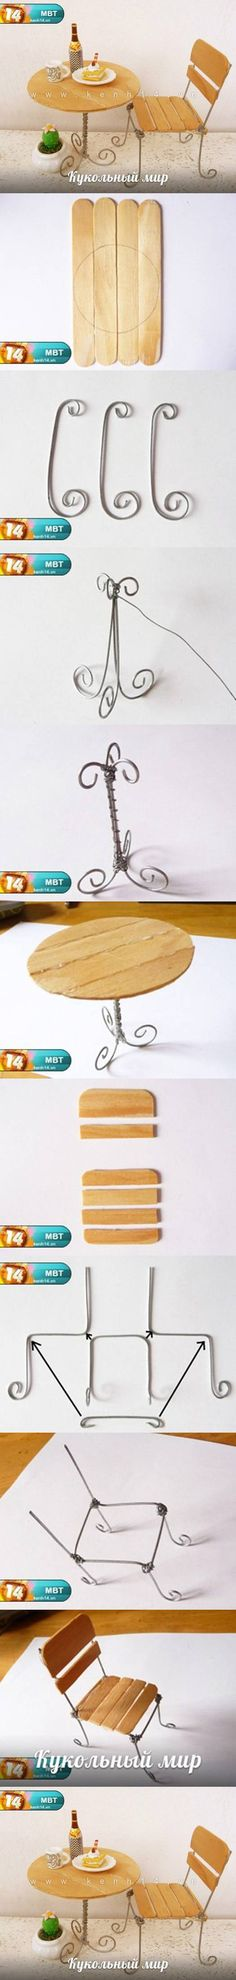 DIY Popsicle Stick Desk and Chair DIY Popsicle Stick Desk and Chair - could be done with wooden coffee sticks or similar for smaller scale